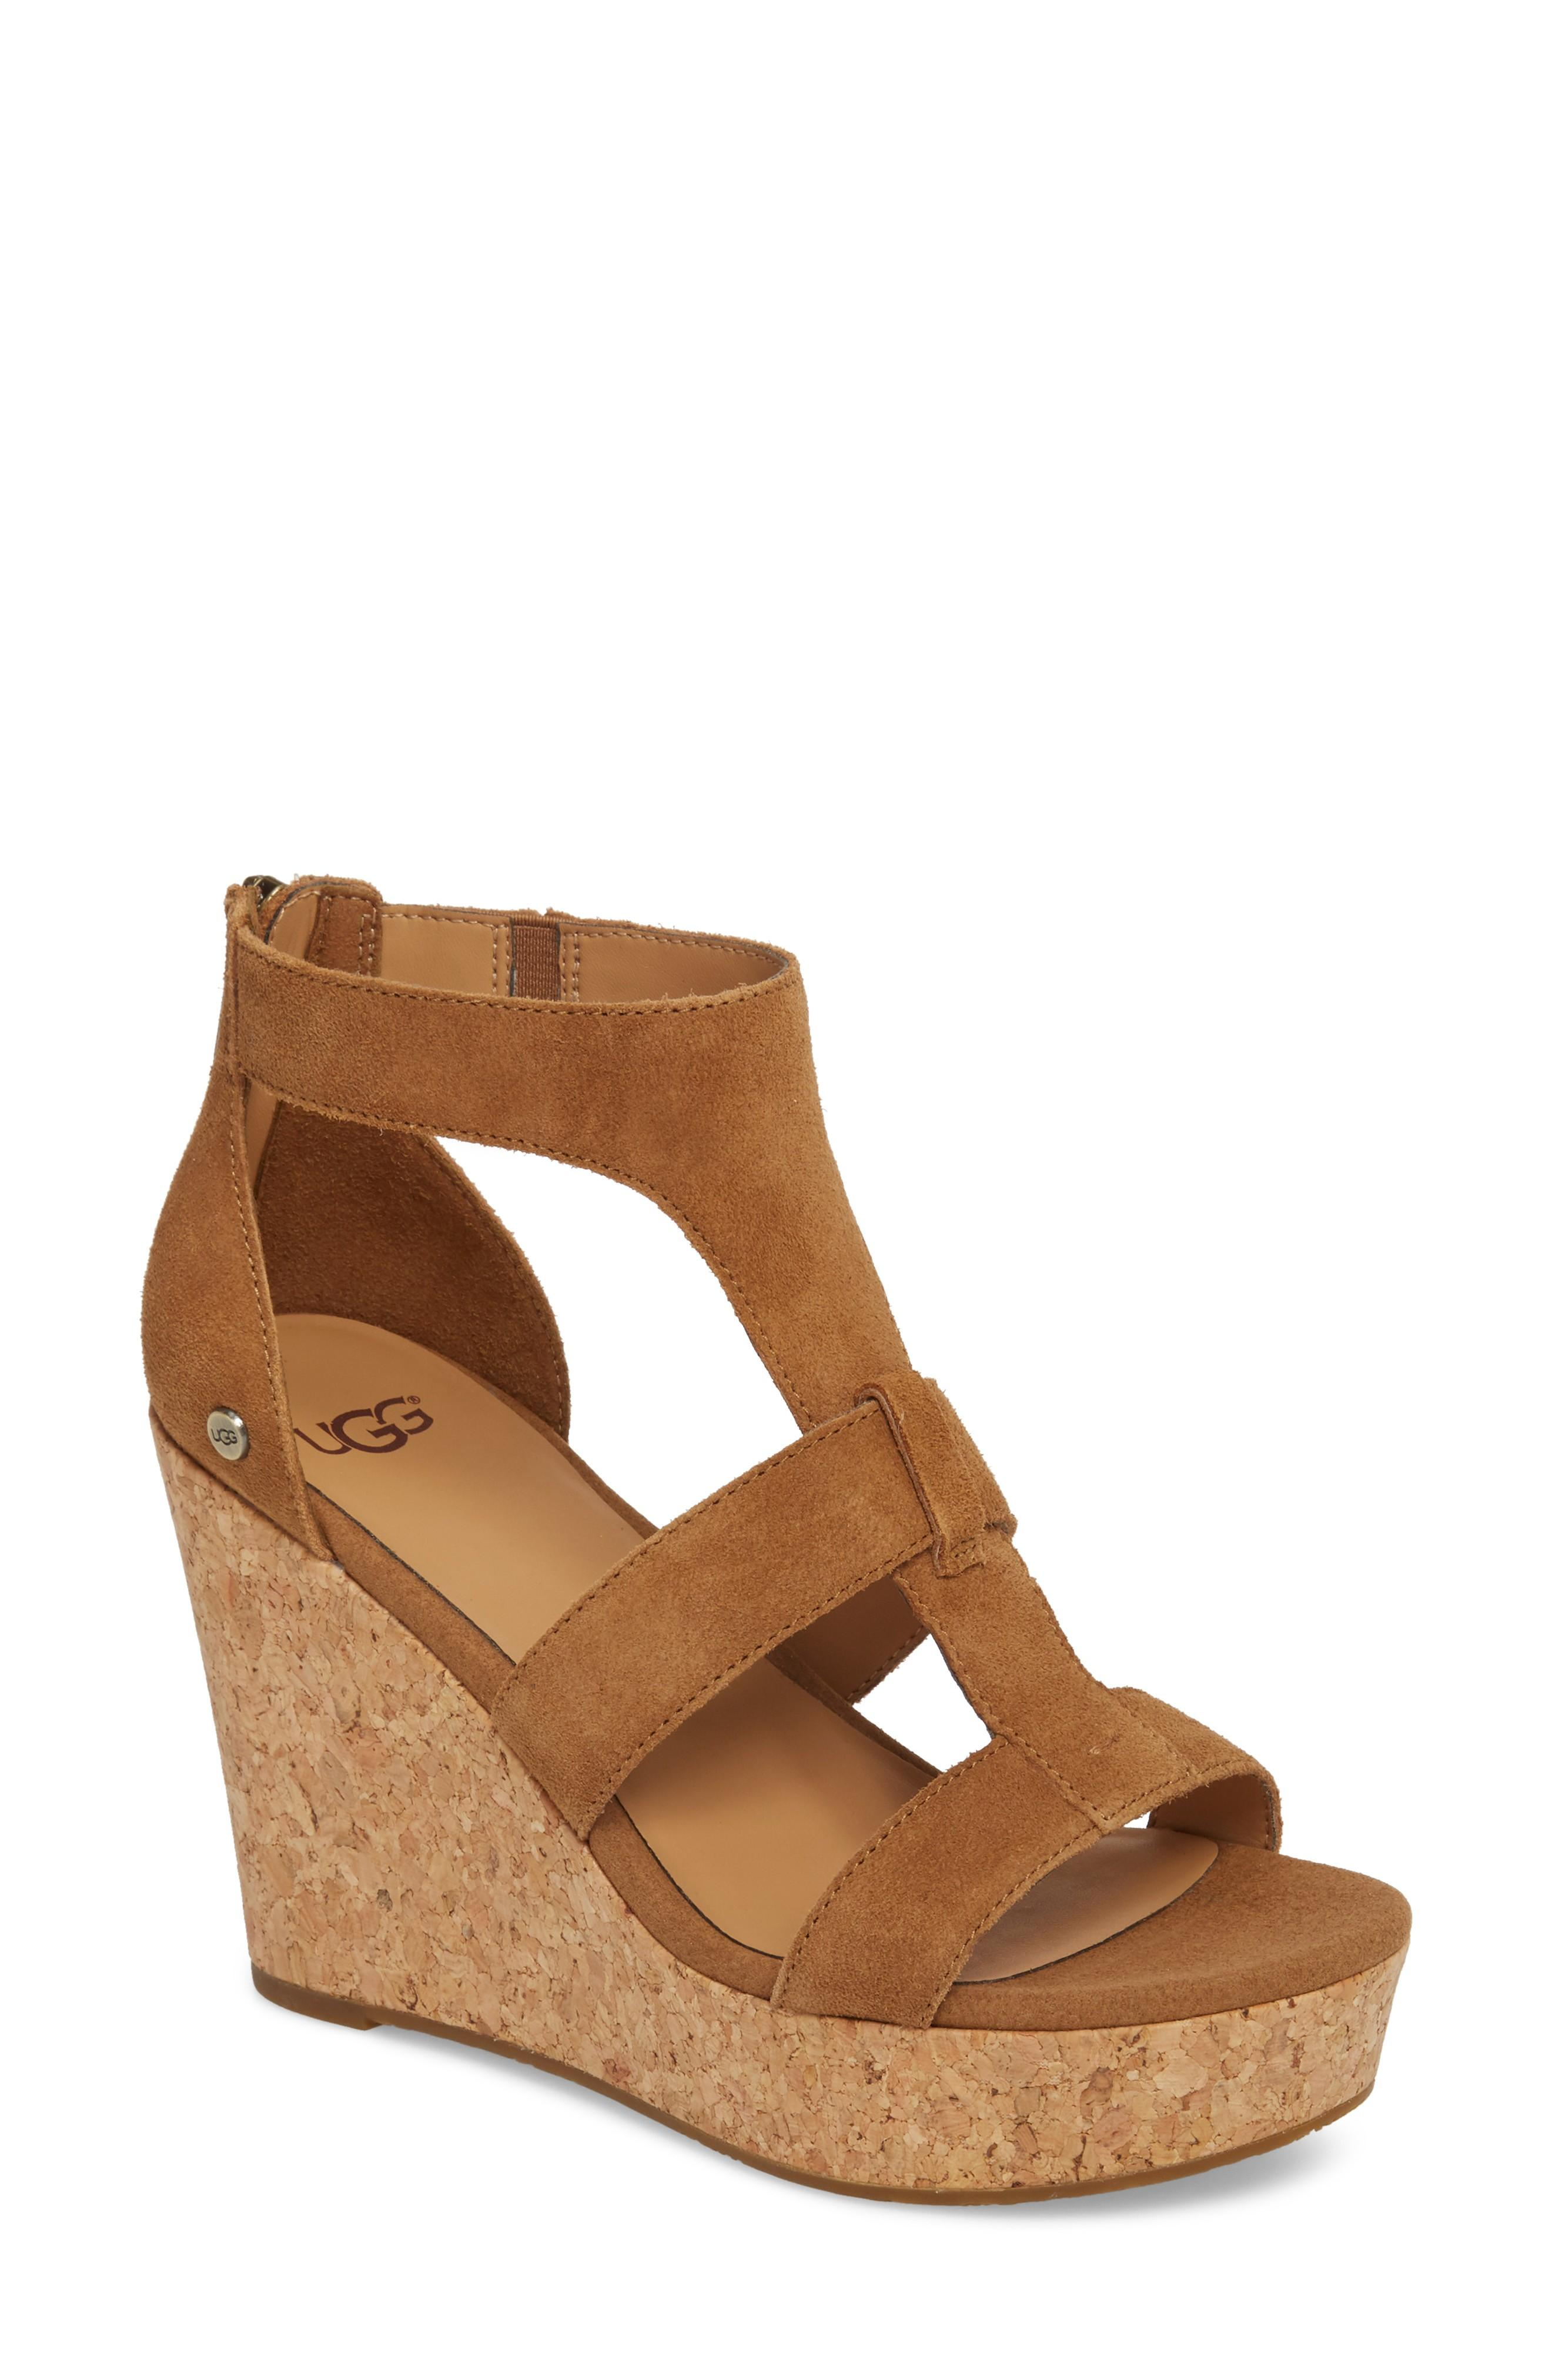 a68f3969d4ea Style Name  Ugg Whitney Platform Wedge Sandal (Women). Style Number   5507199. Available in stores.